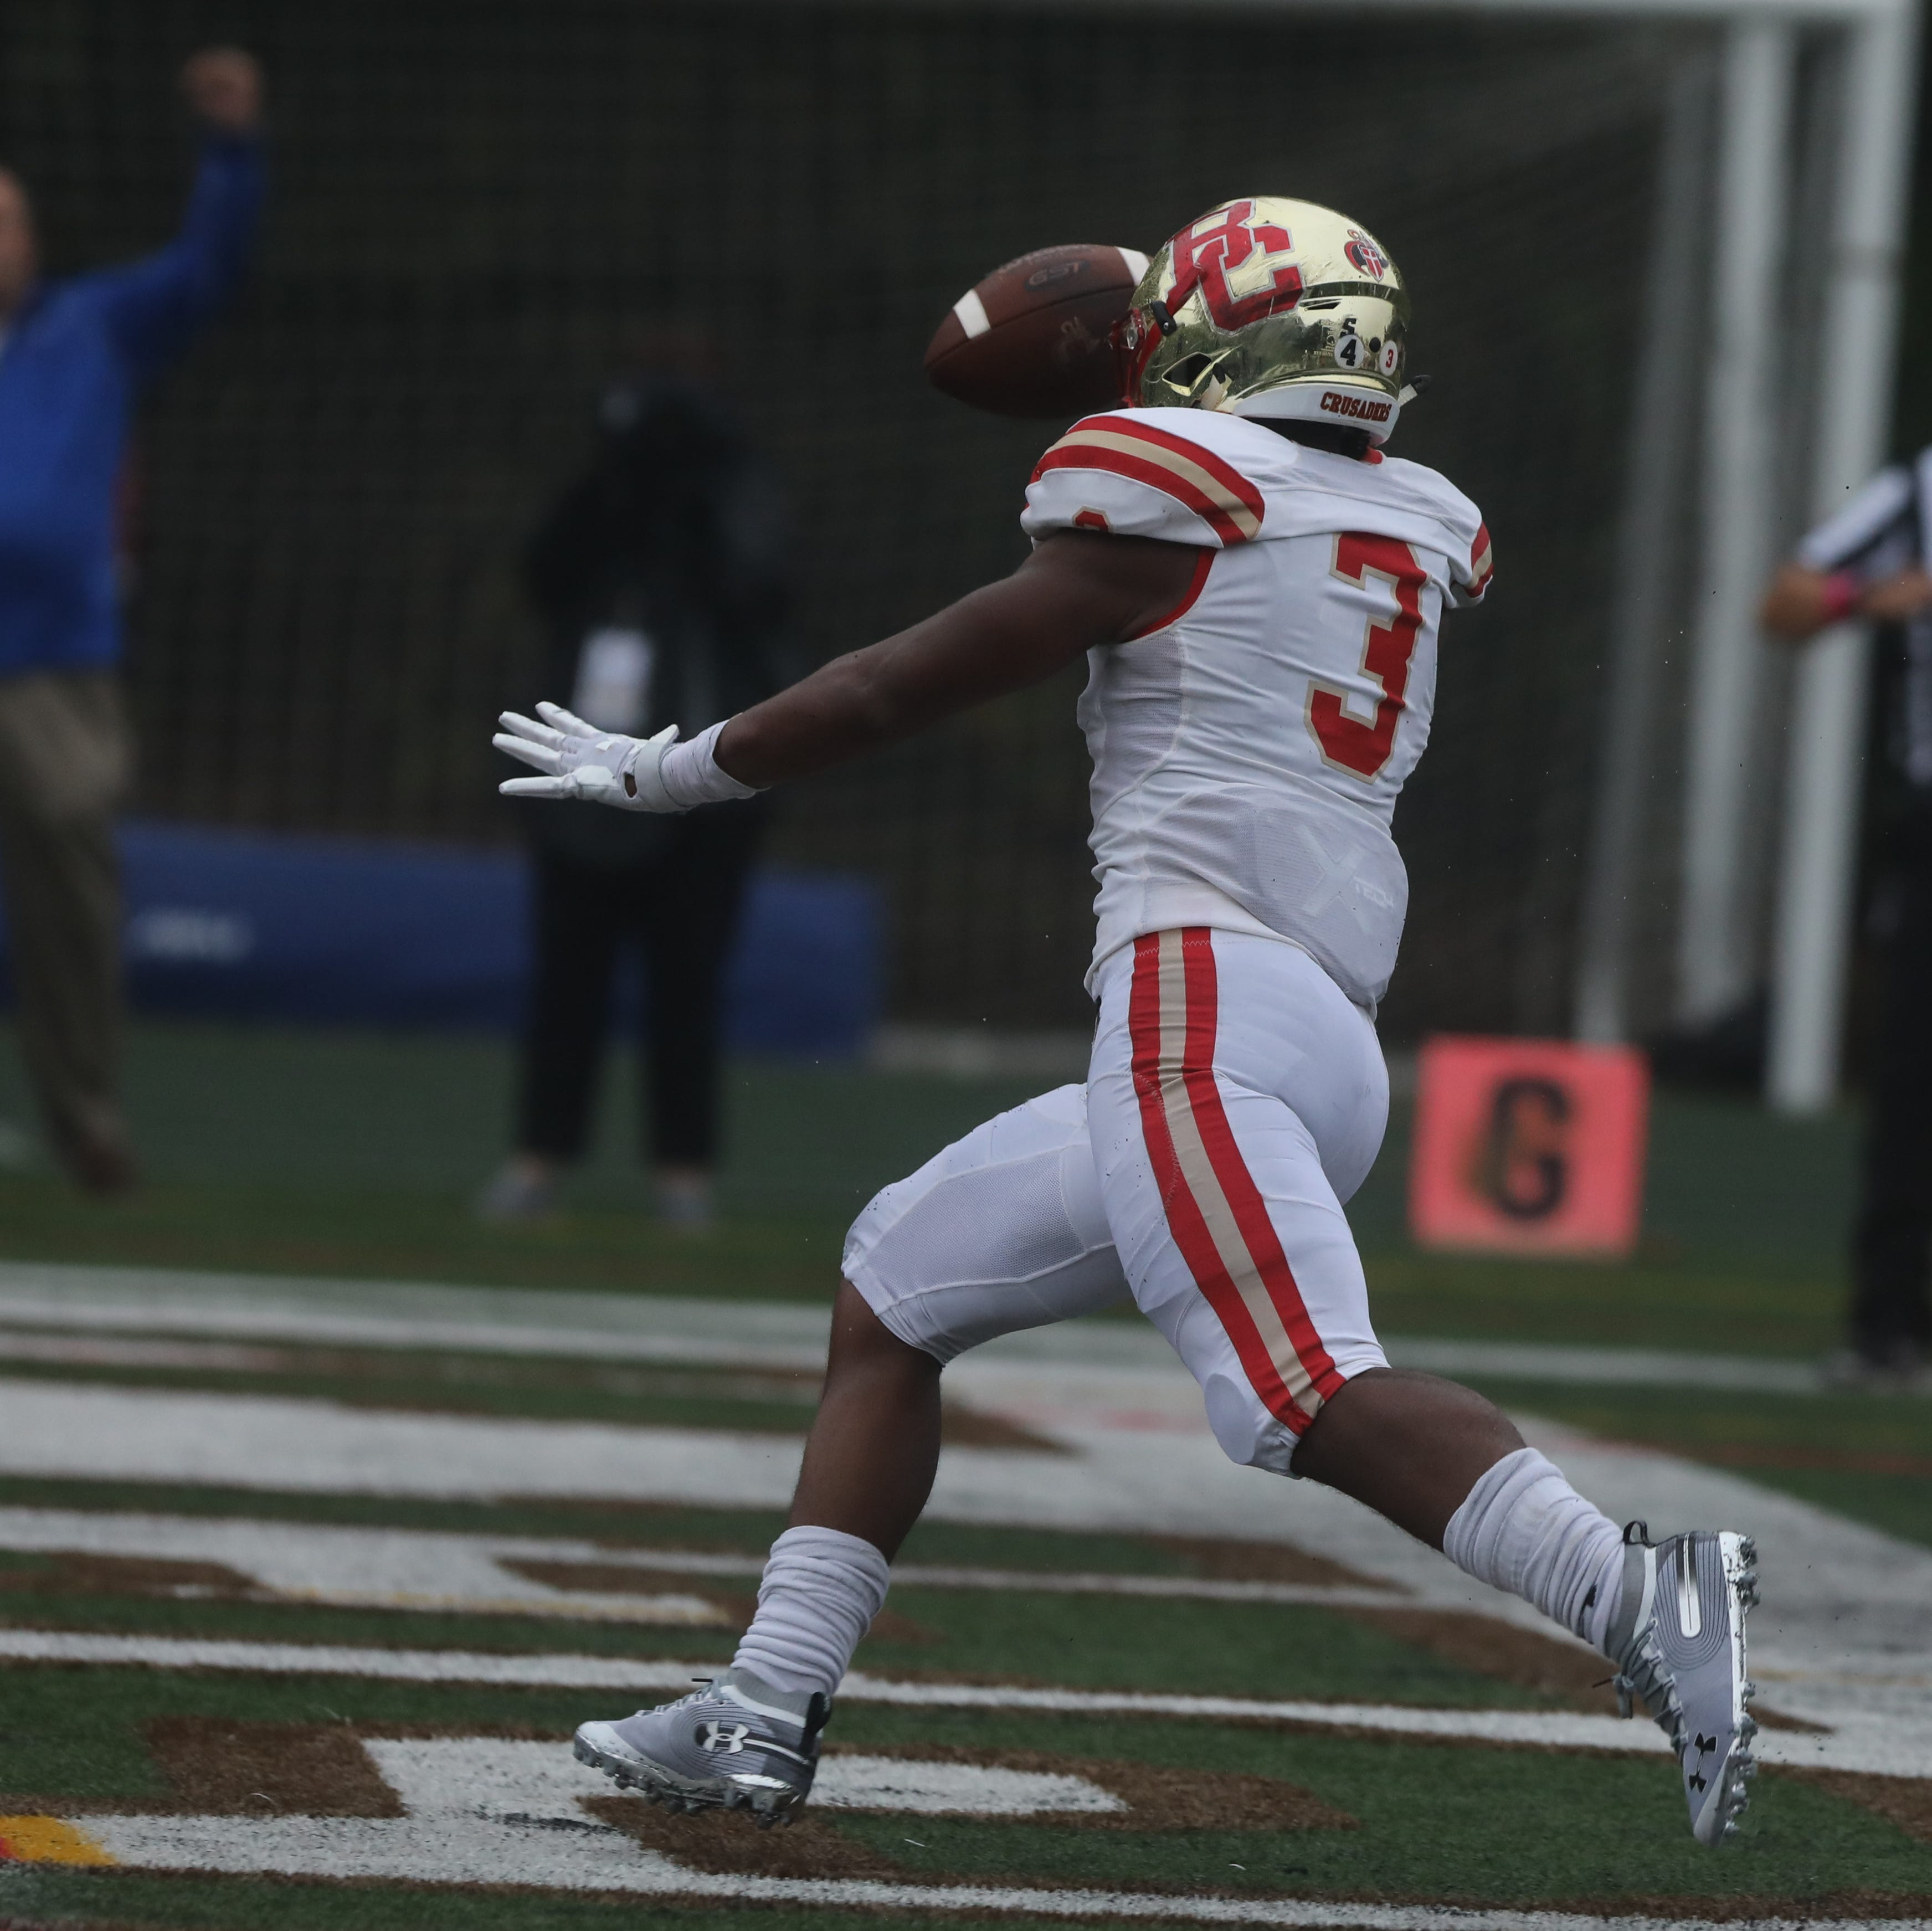 Bergen Catholic football avoids major upset against winless Pope John